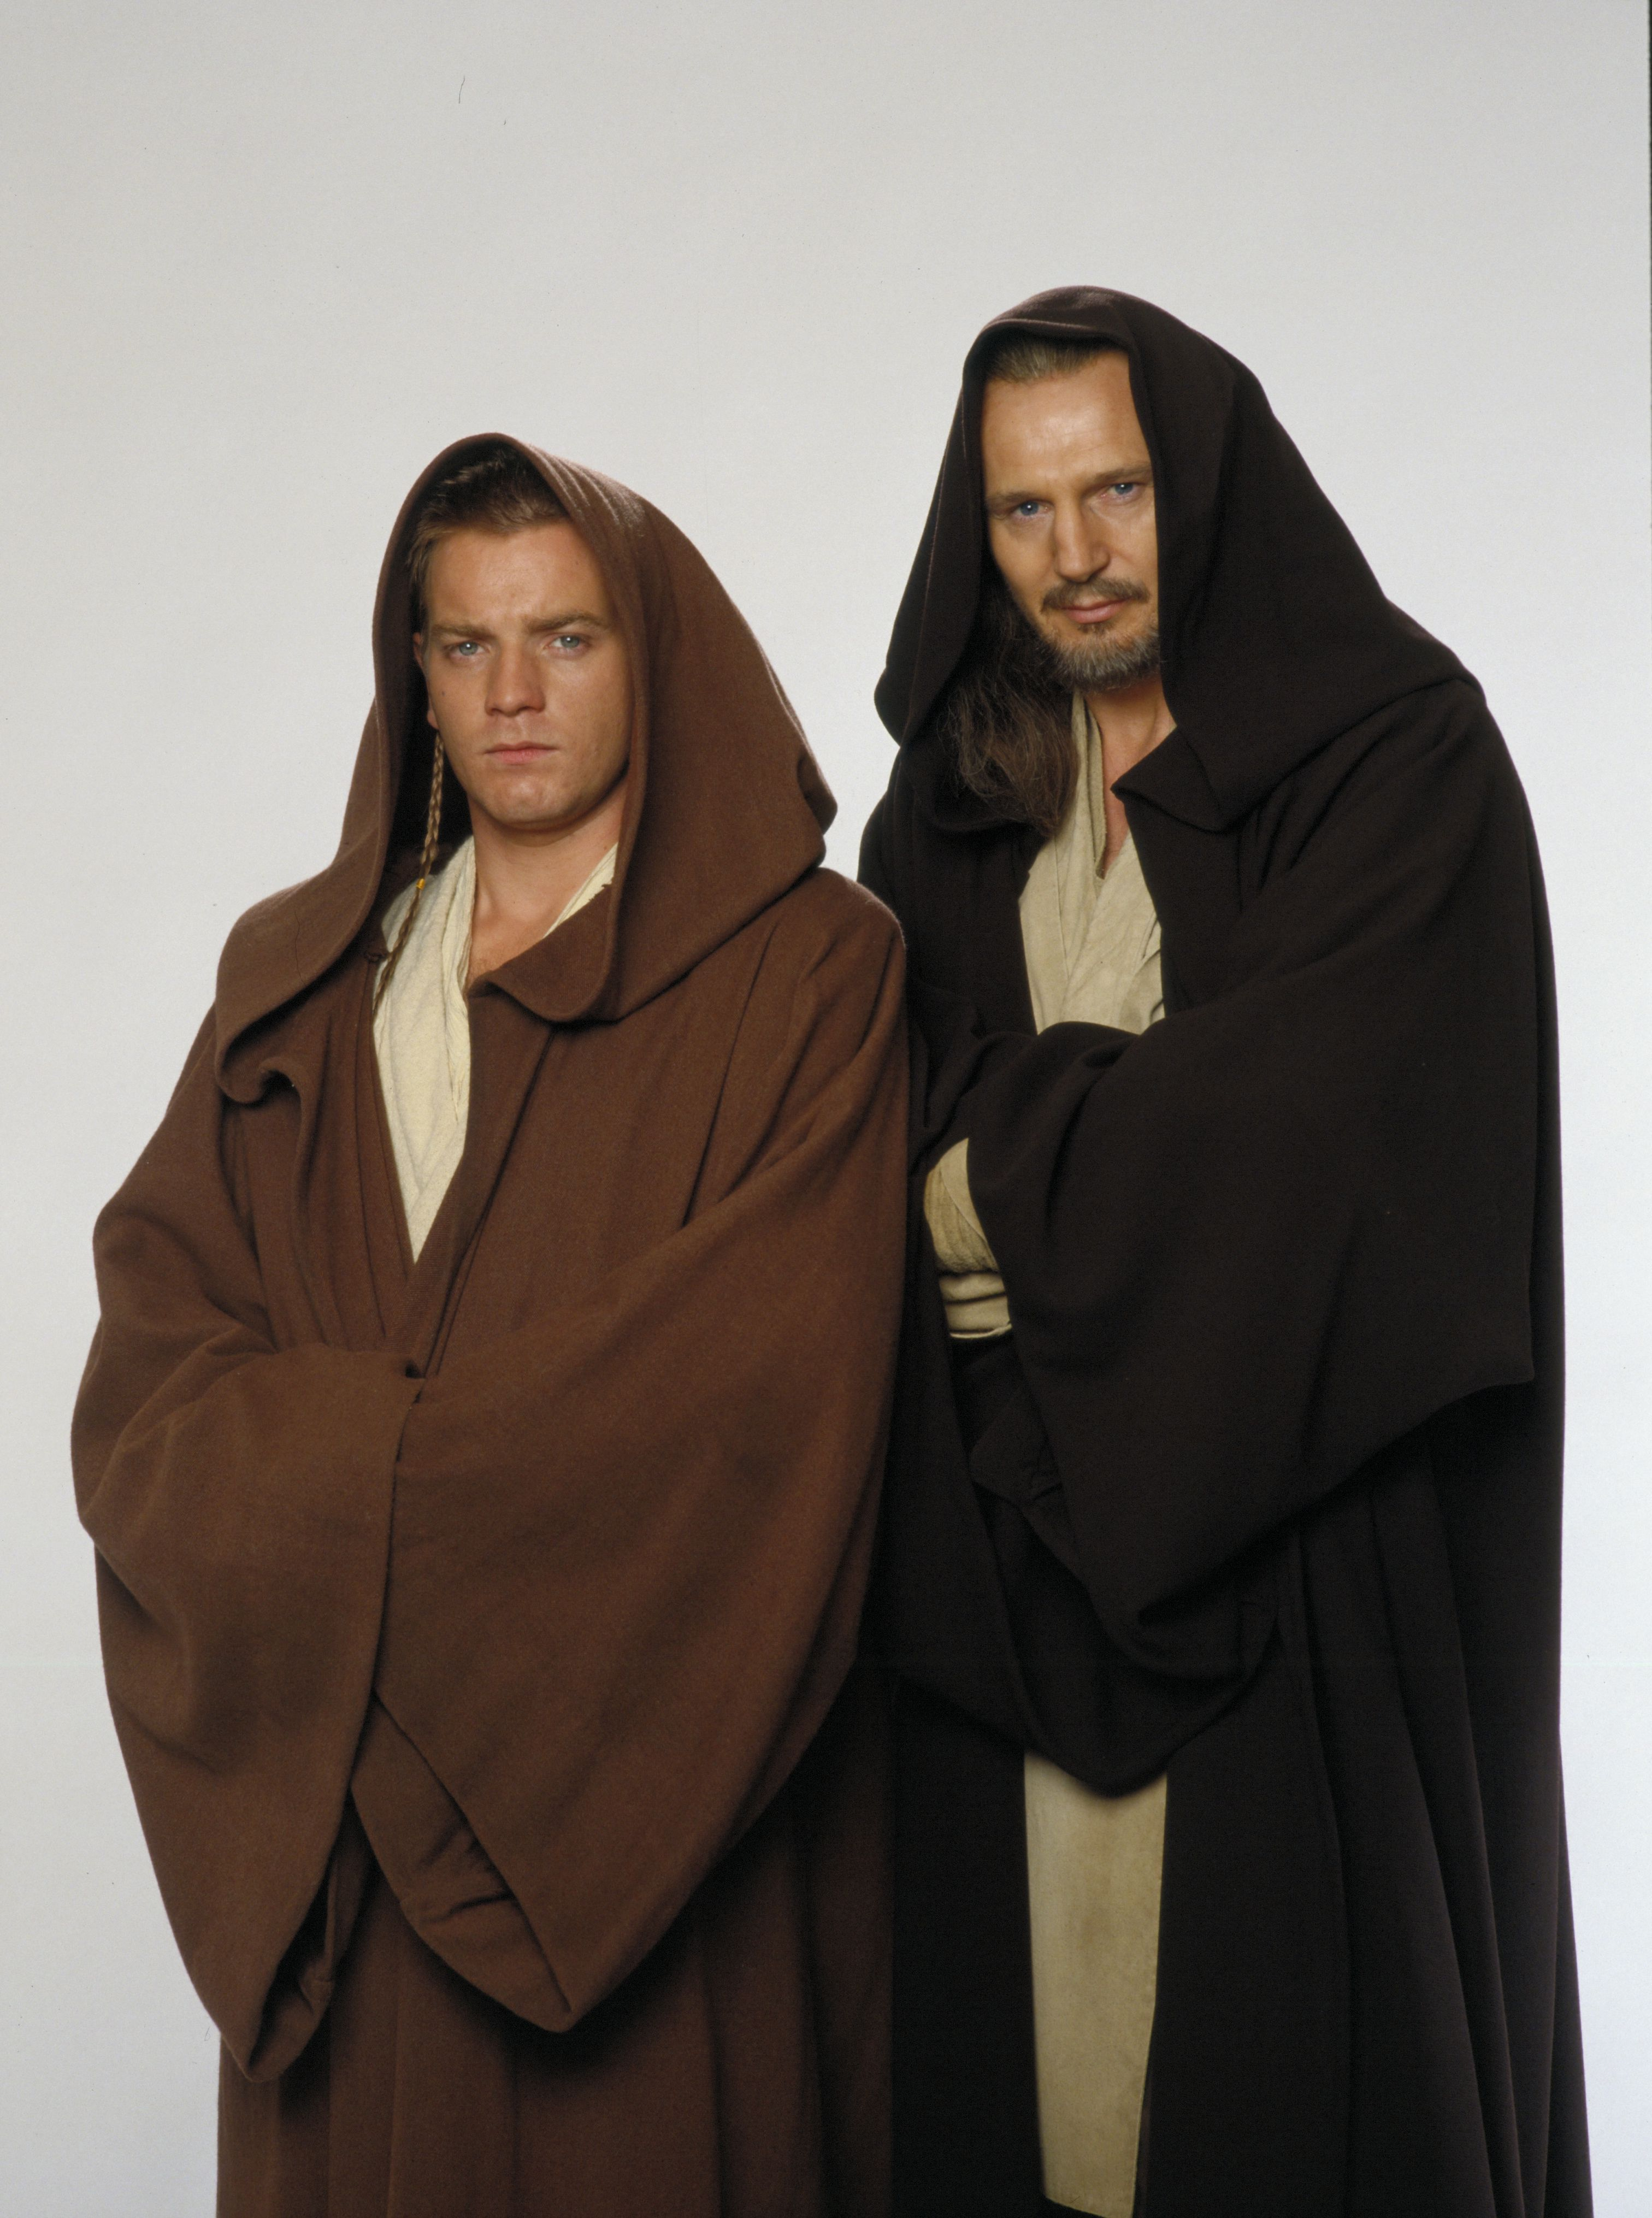 Star Wars The Phantom Menace Behind the Scenes 3 - HeyUGuys